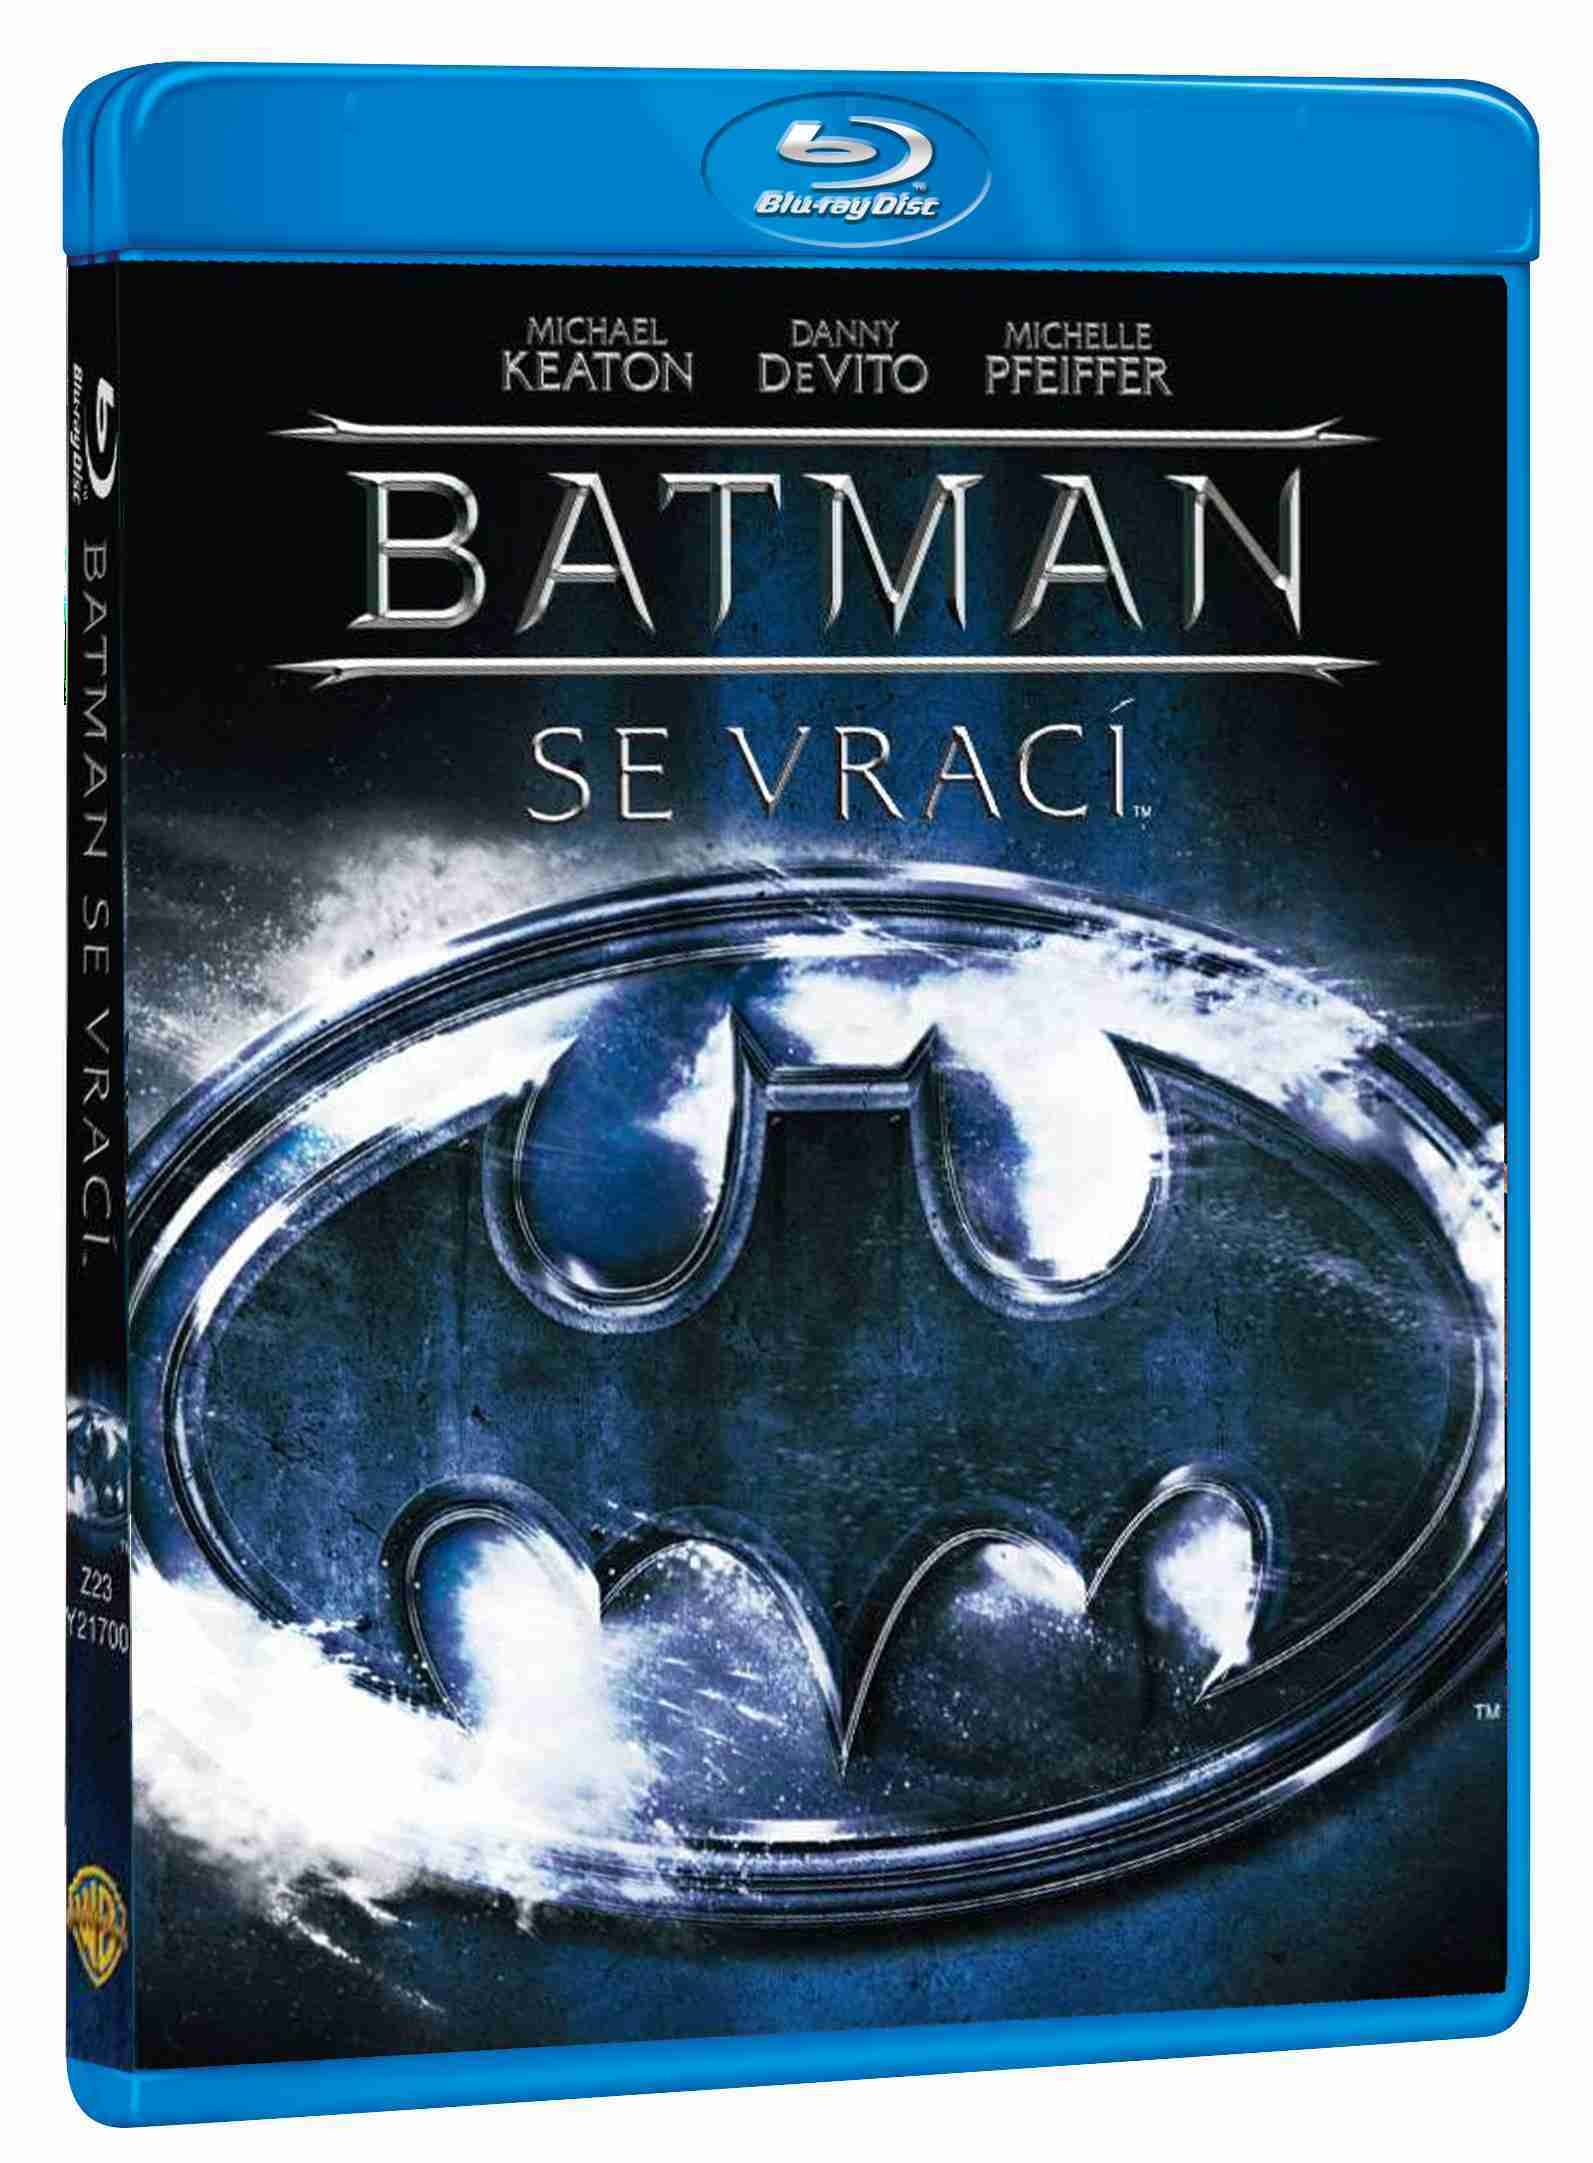 BATMAN SE VRACÍ - Blu-ray